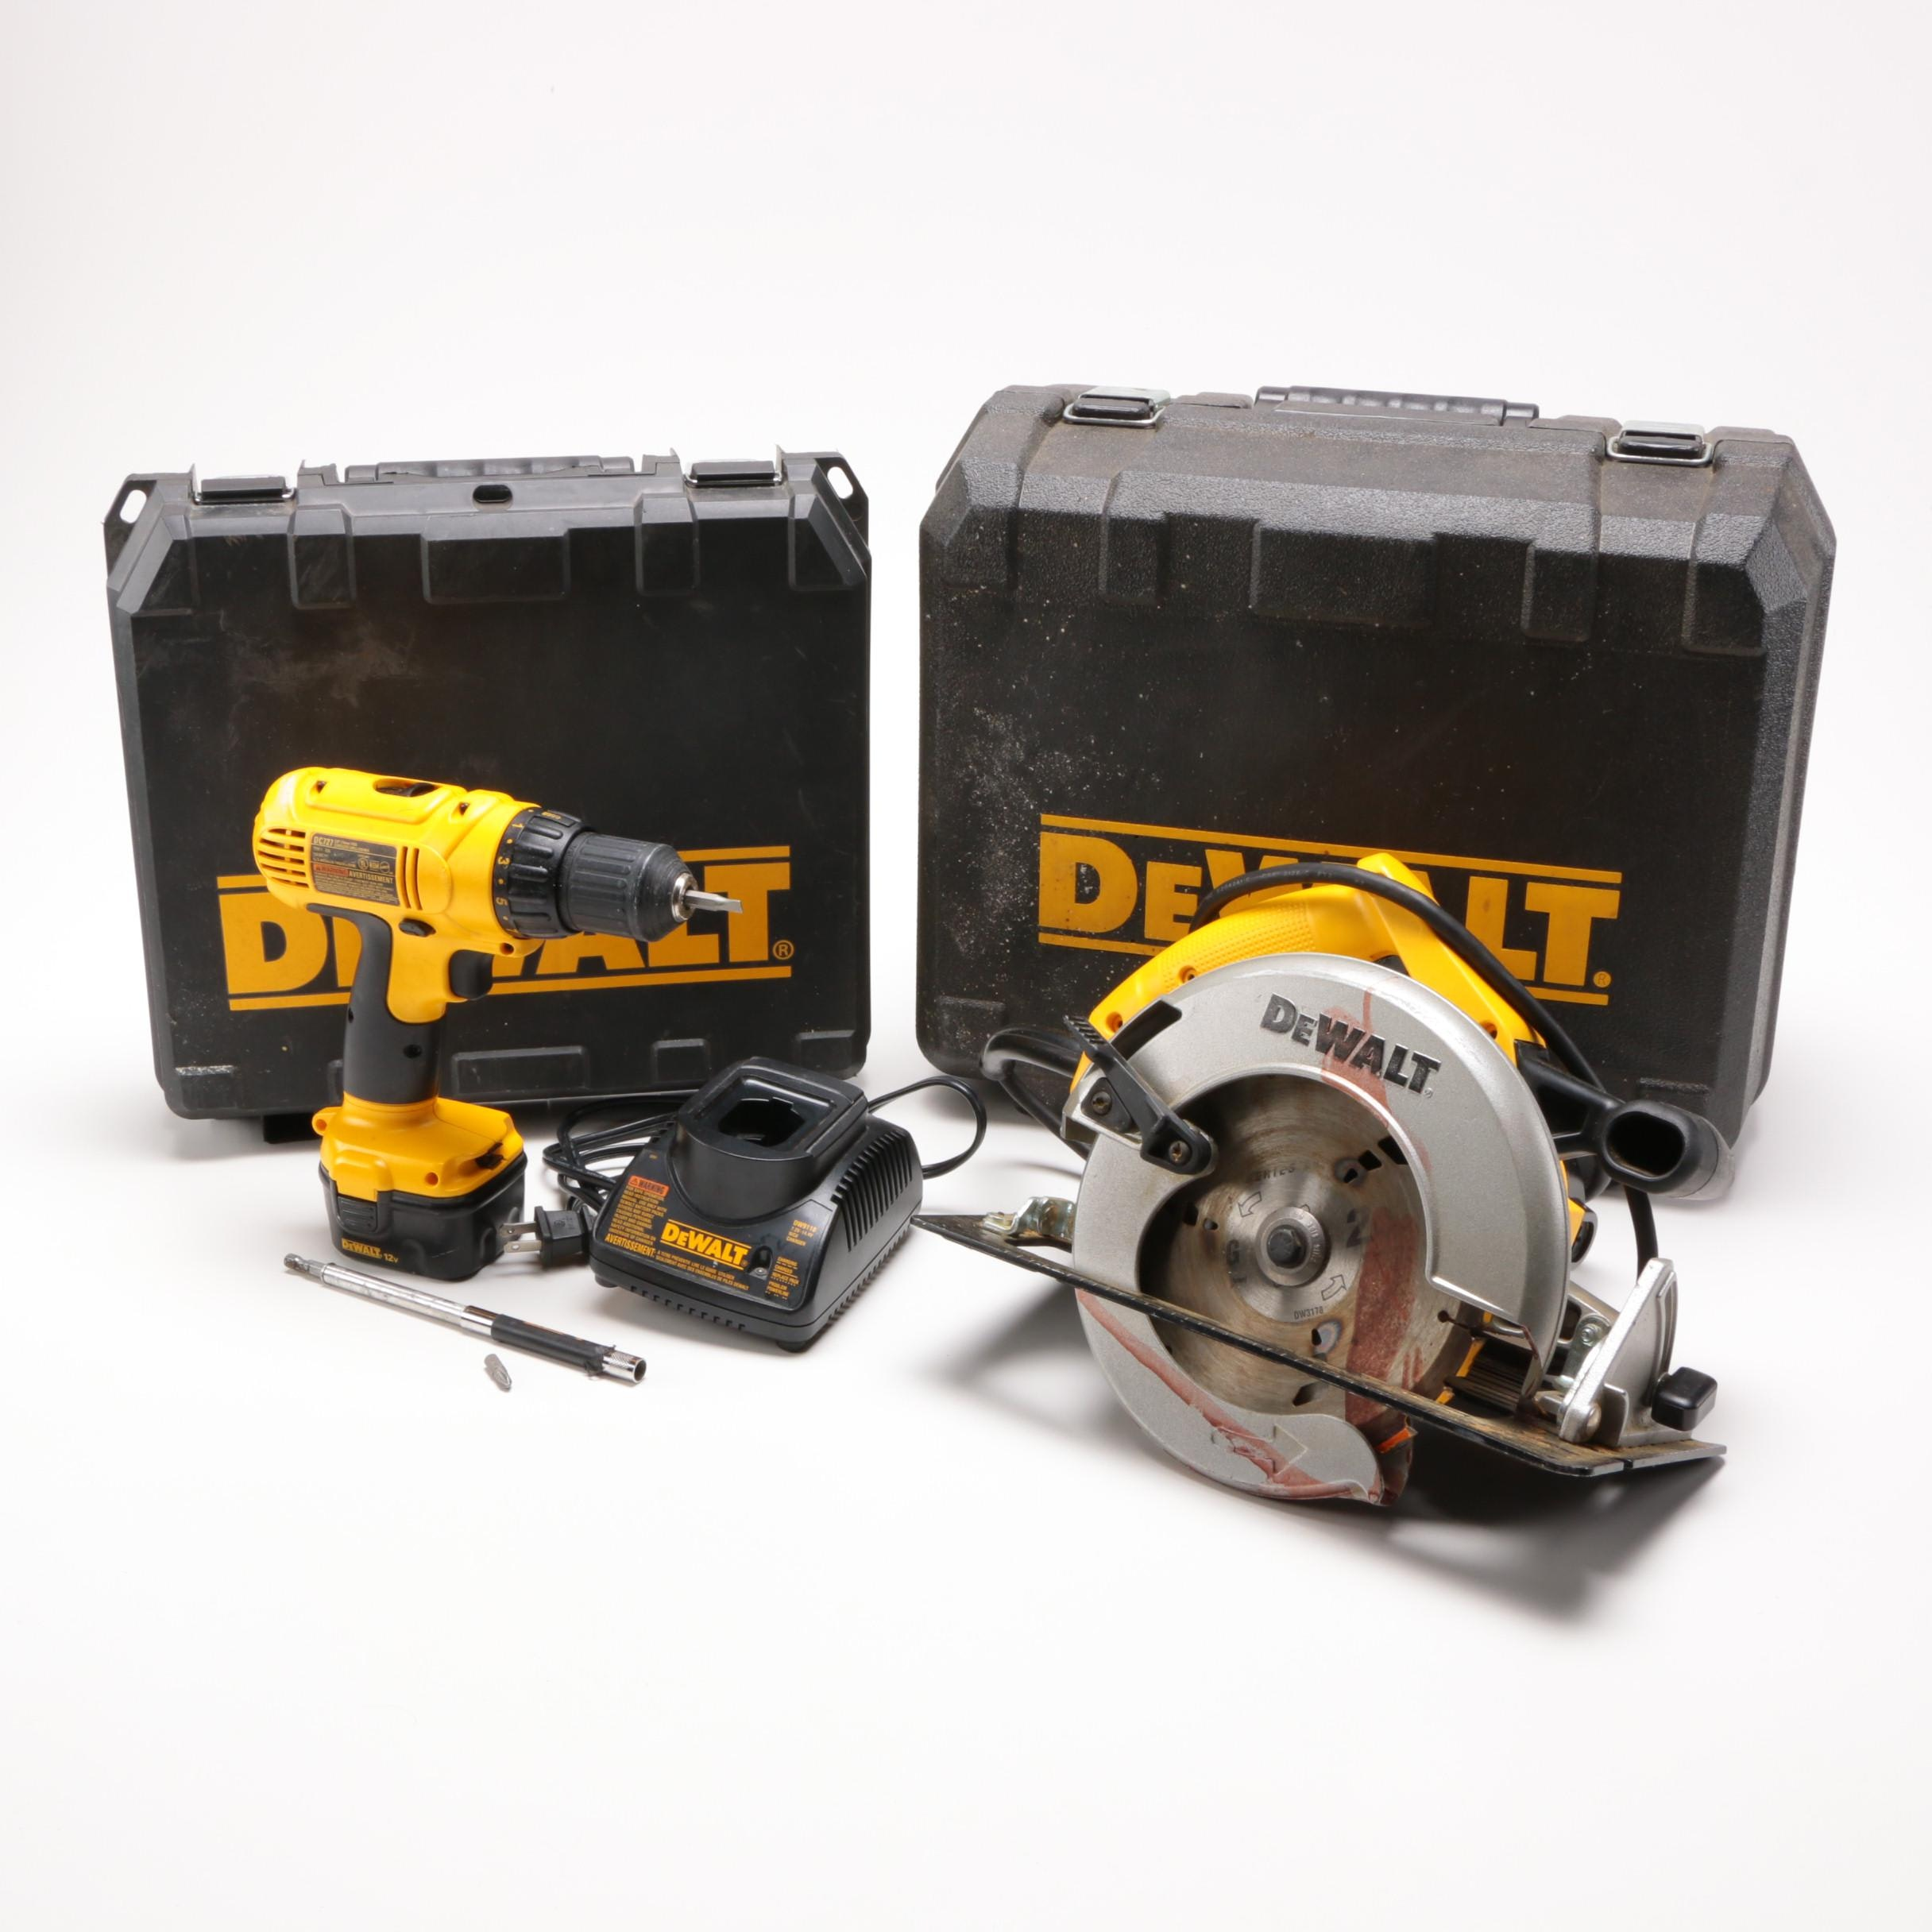 DeWalt Drill and Circular Saw